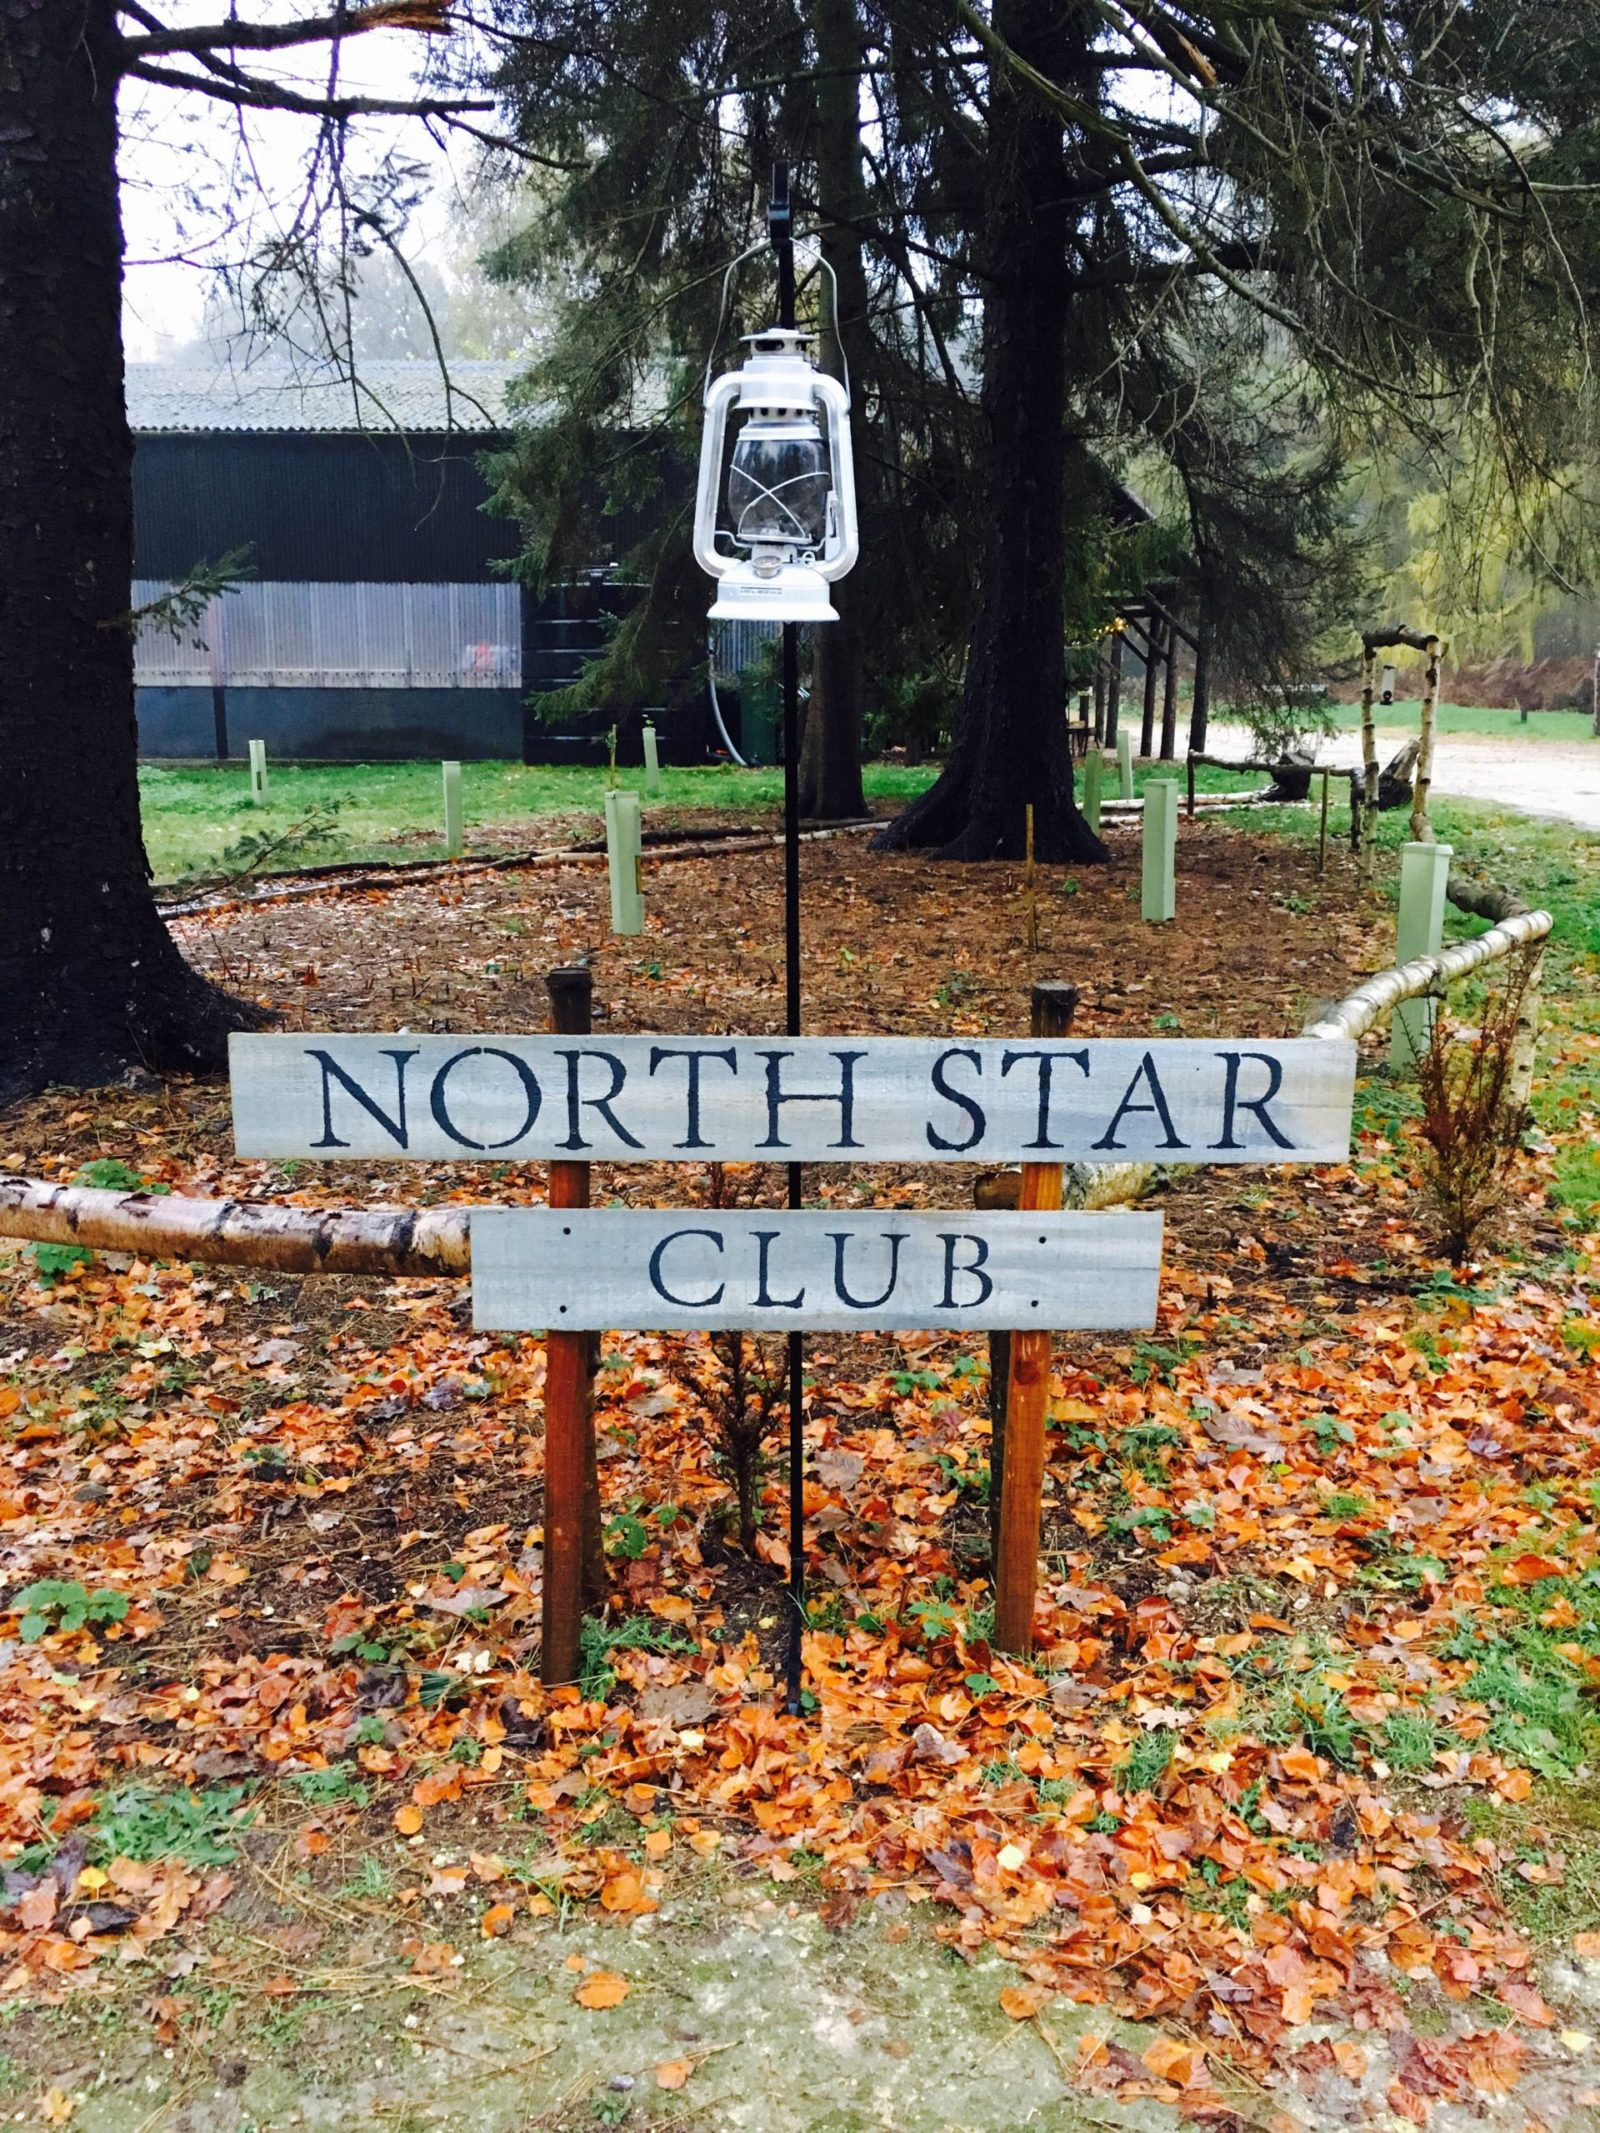 A review of North Star Club in Yorkshire